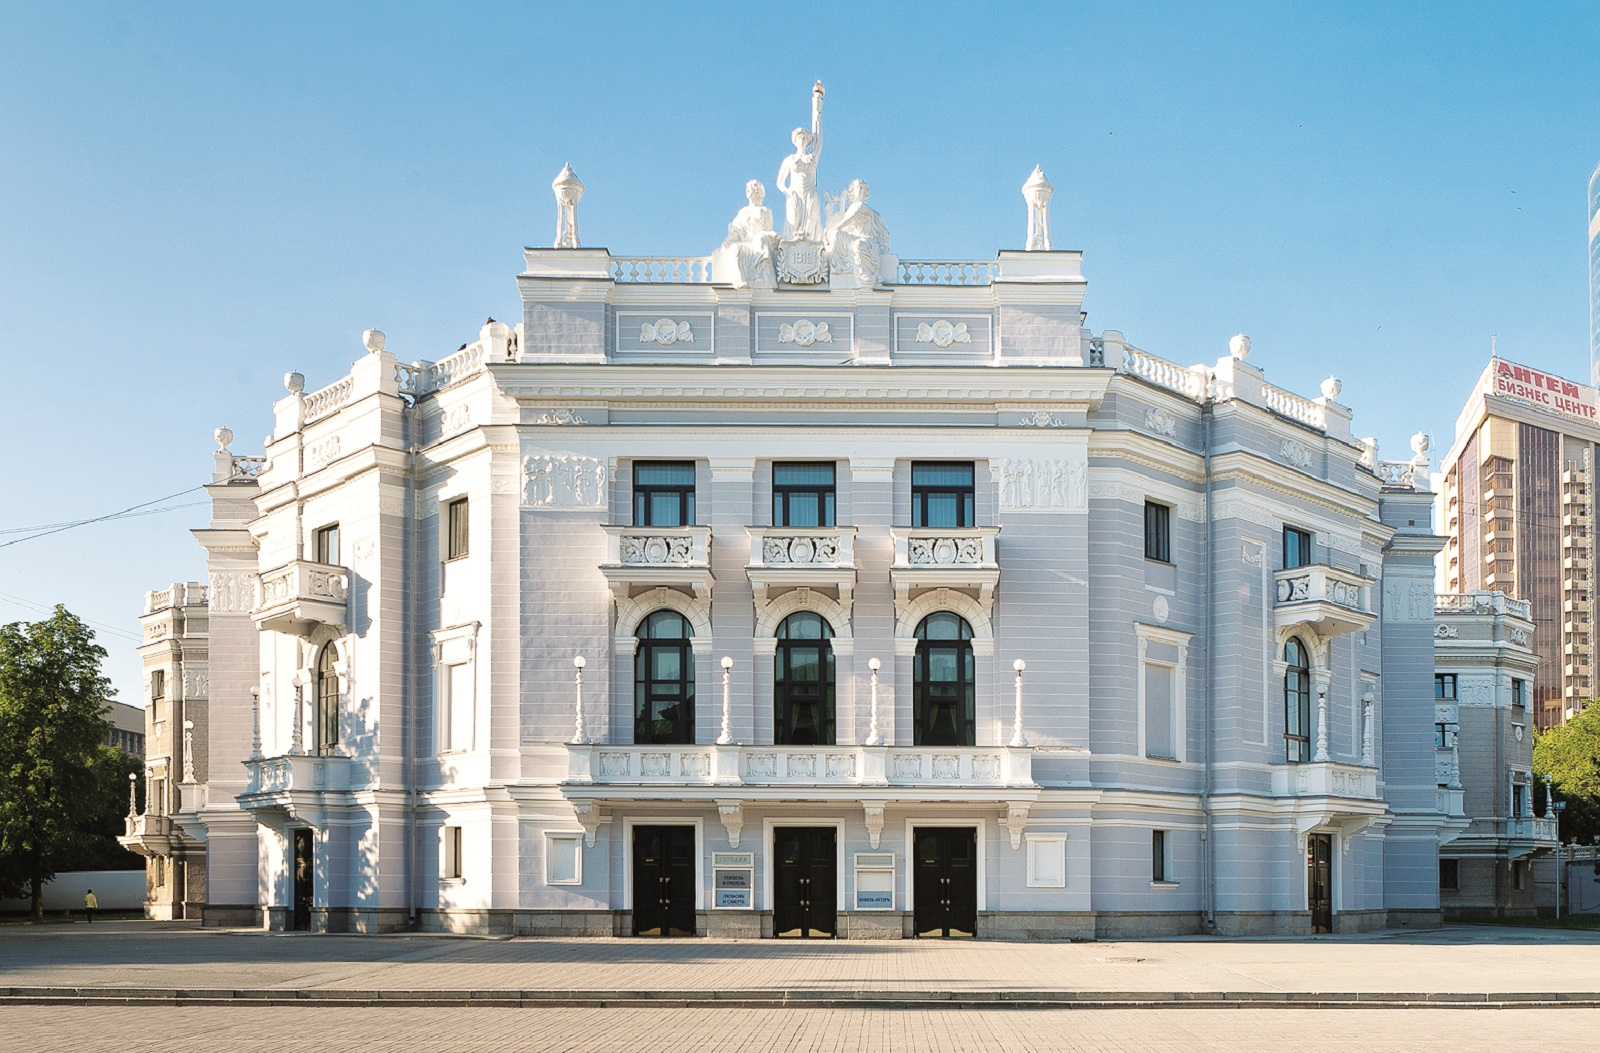 Opera_house_The_State_academic_theatre_of_Opera_and_ballet_in_Ekaterinburg_Was_founded_in_1912_The_project_of_the_theatre_was_made_by_the_engineer_Vladimir_Semyonov_副本.jpg